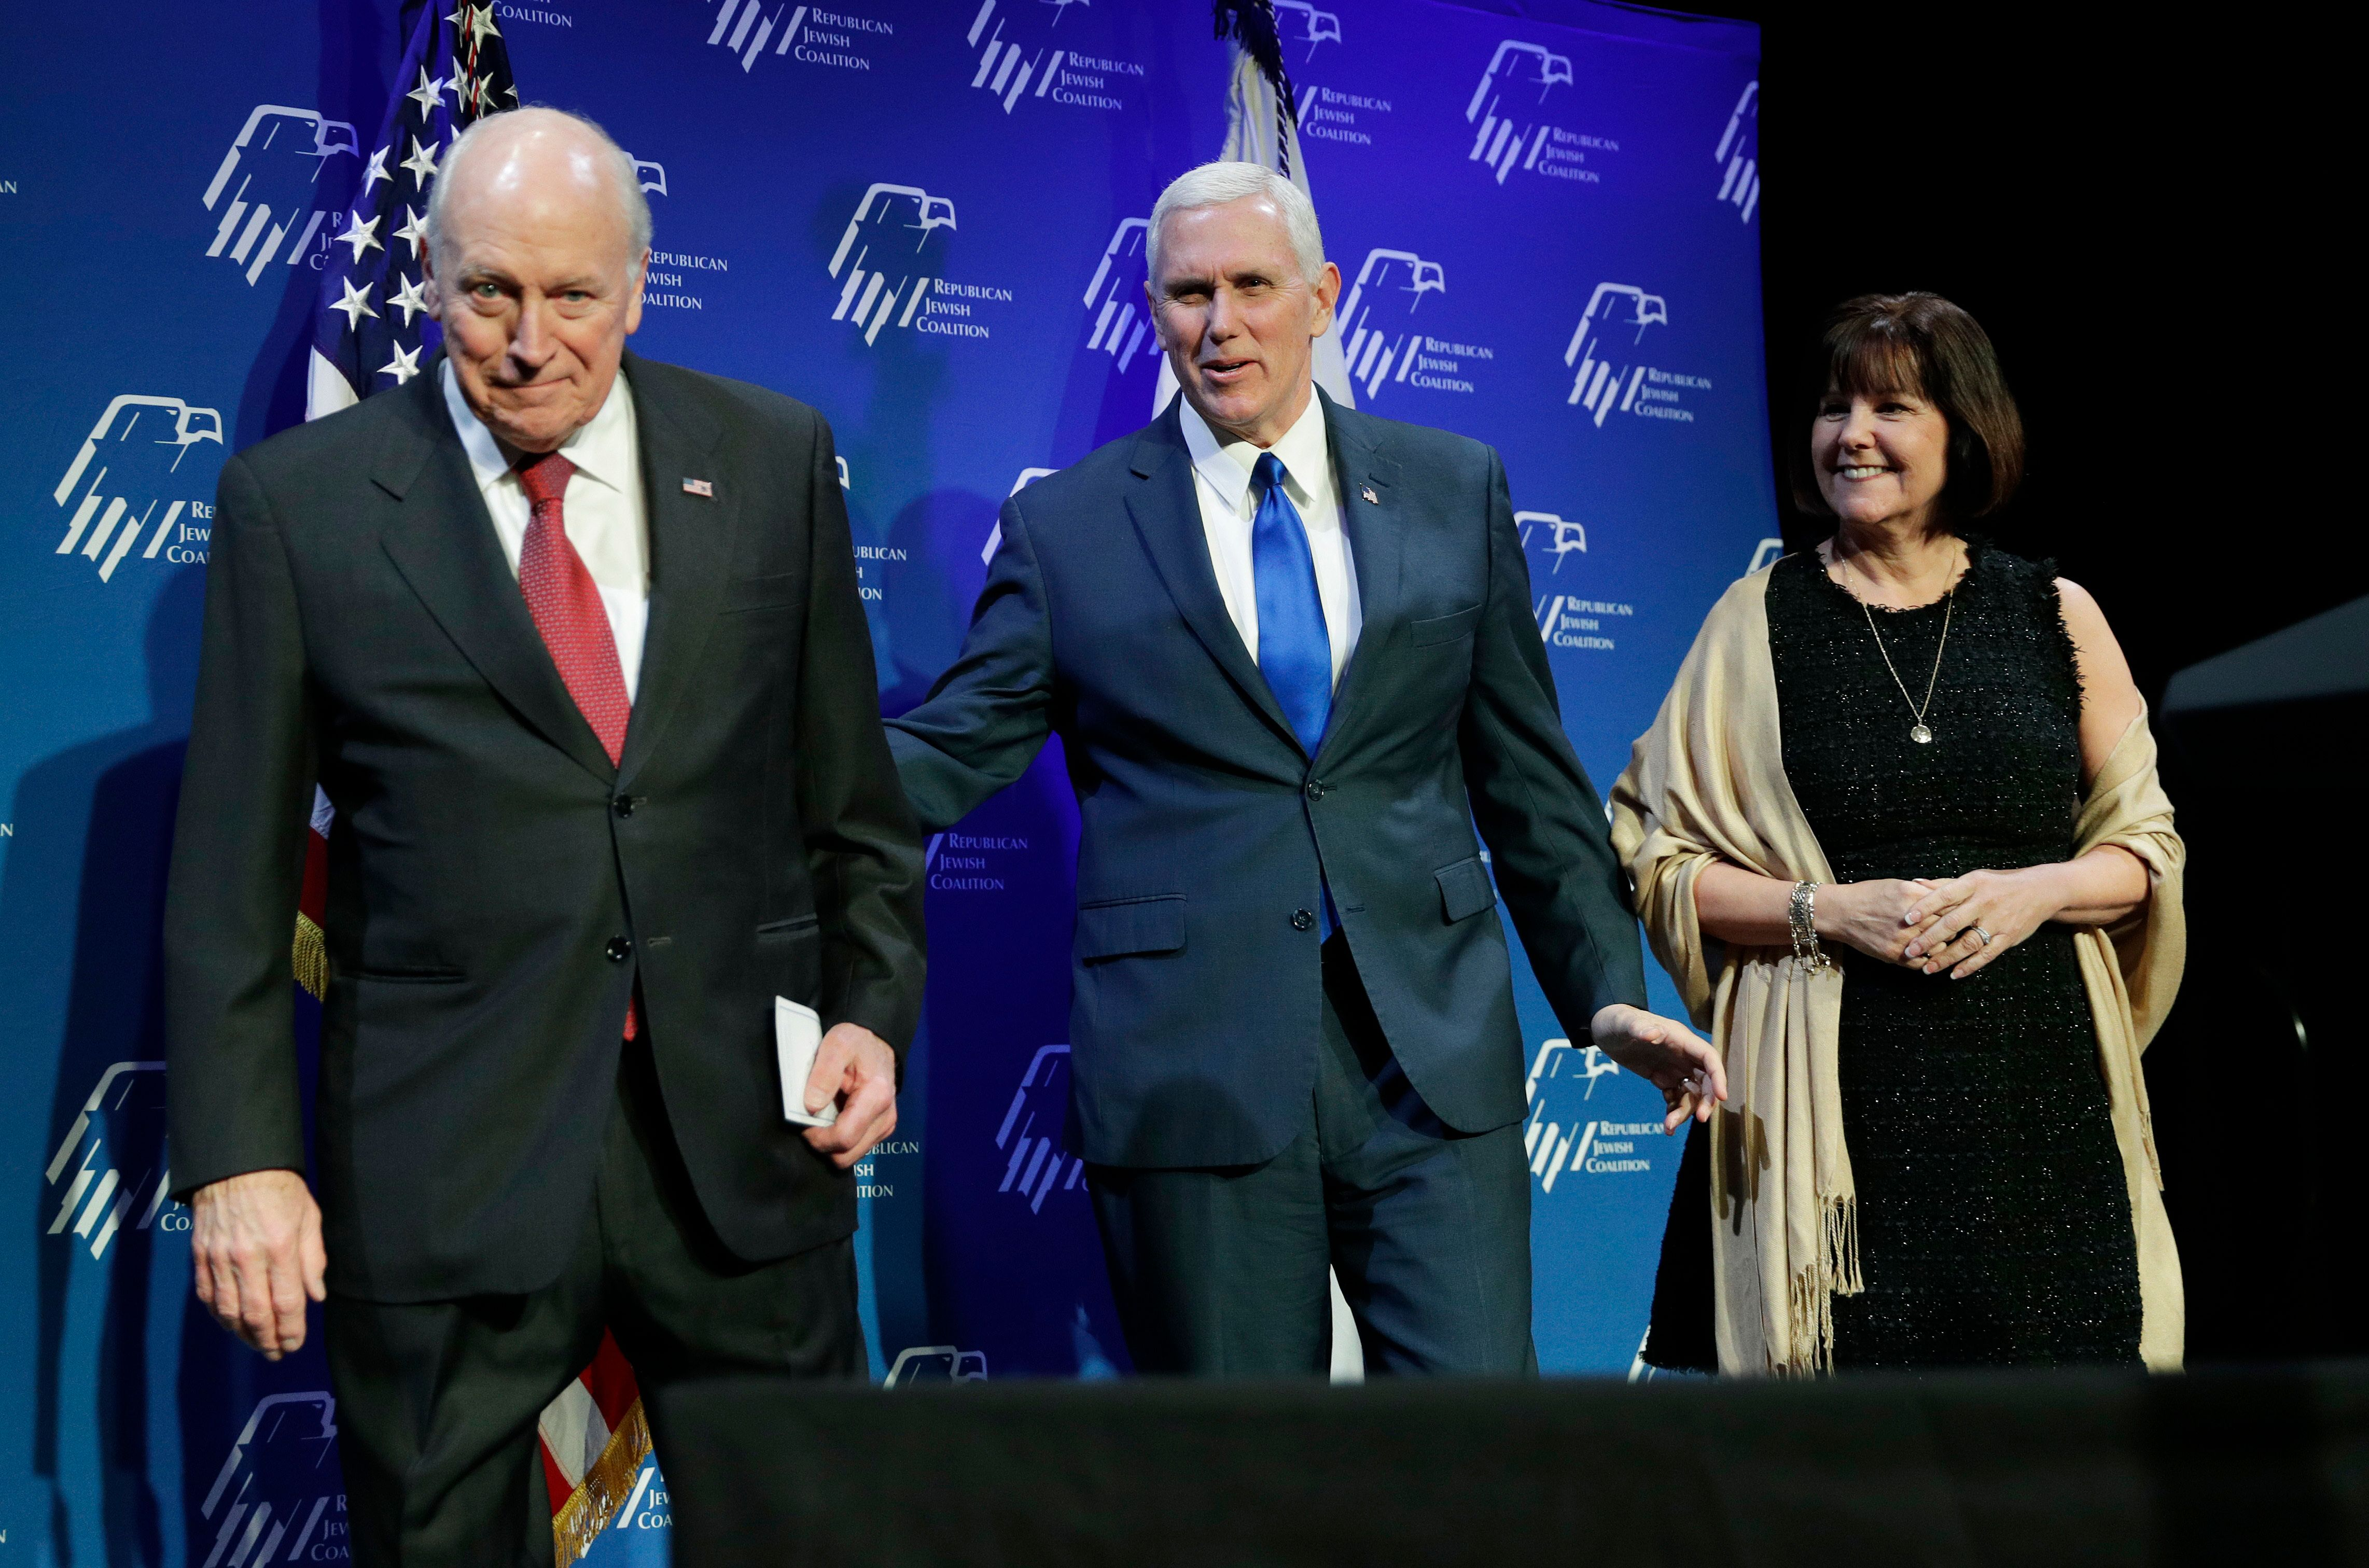 Vice President Mike Pence, center, takes the stage with his wife Karen Pence, right, after they were introduced by former Vice President Dick Cheney, left, at the Republican Jewish Coalition annual leadership meeting, Friday, Feb. 24, 2017, in Las Vegas. (AP Photo/John Locher)